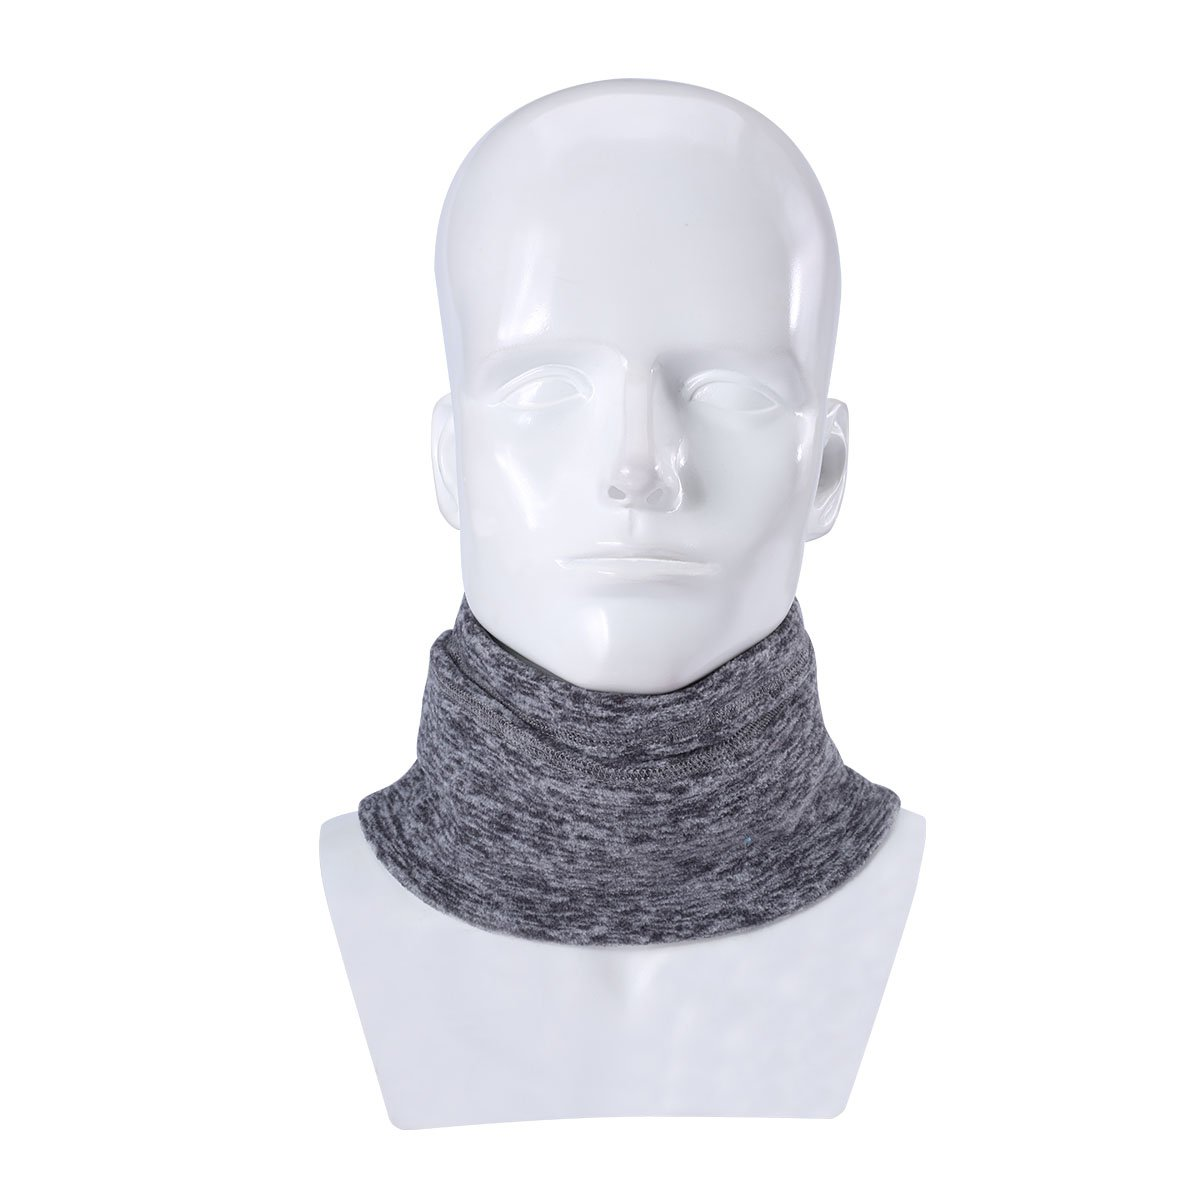 Runtlly Neck Warmer - Reversible Neck Gaiter Tube, Hat Snood,Ear Warmer Headband, Mask & Beanie. Ultimate Thermal Retention, Versatility & Style.